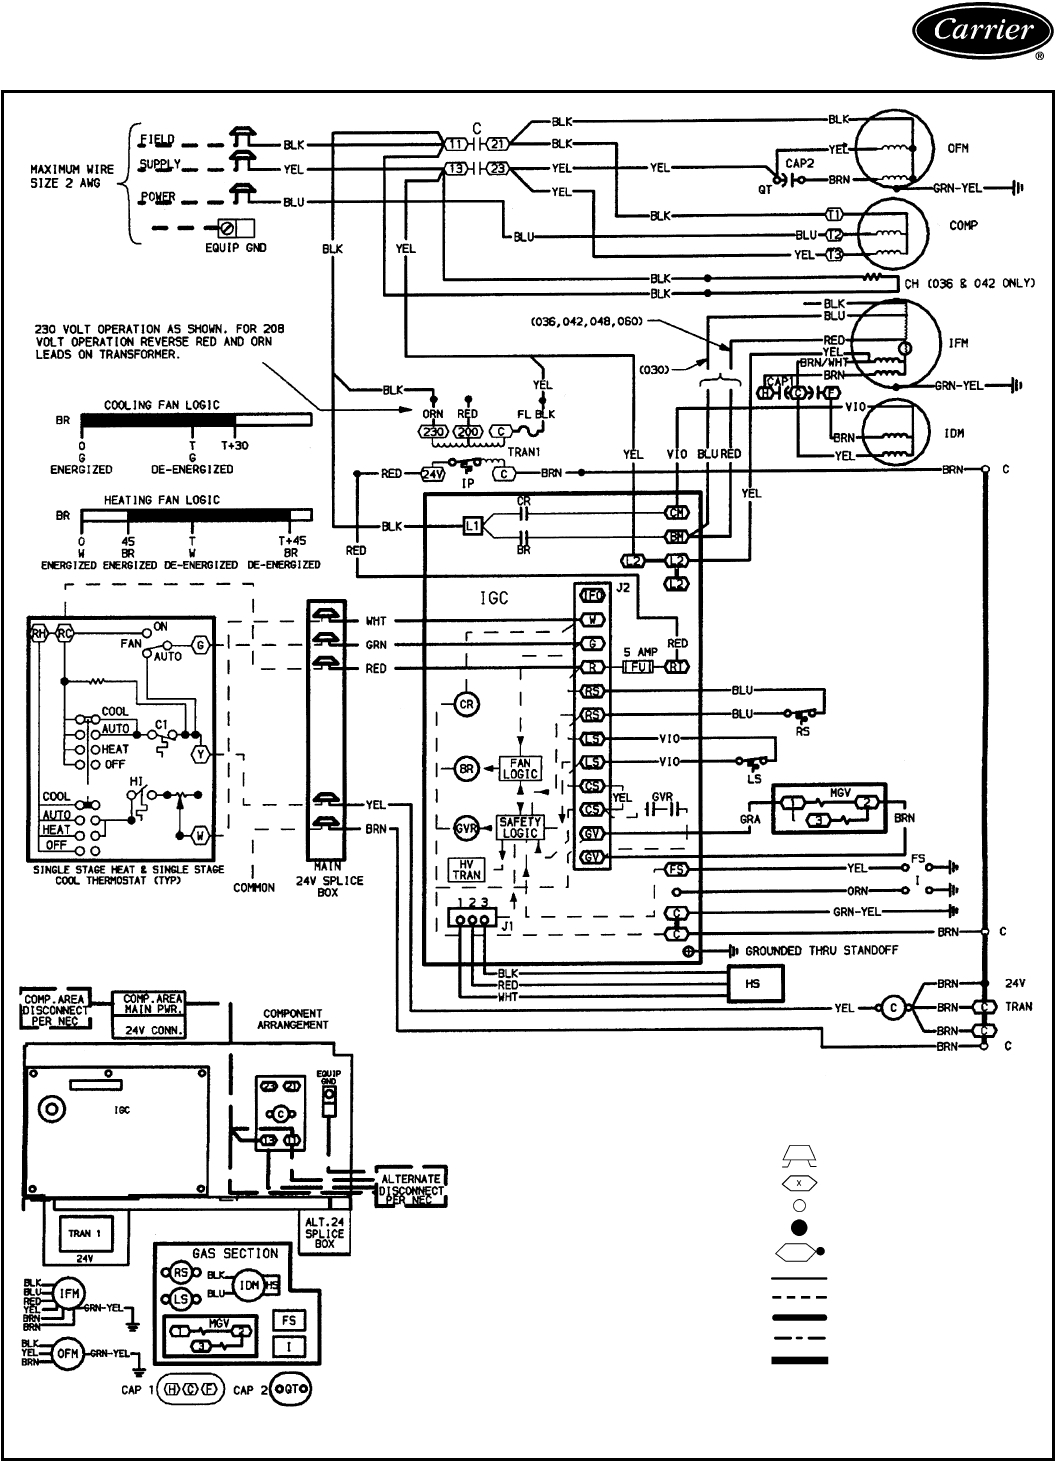 carrier heating thermostat wiring diagram free download carrier heating thermostat wiring diagram